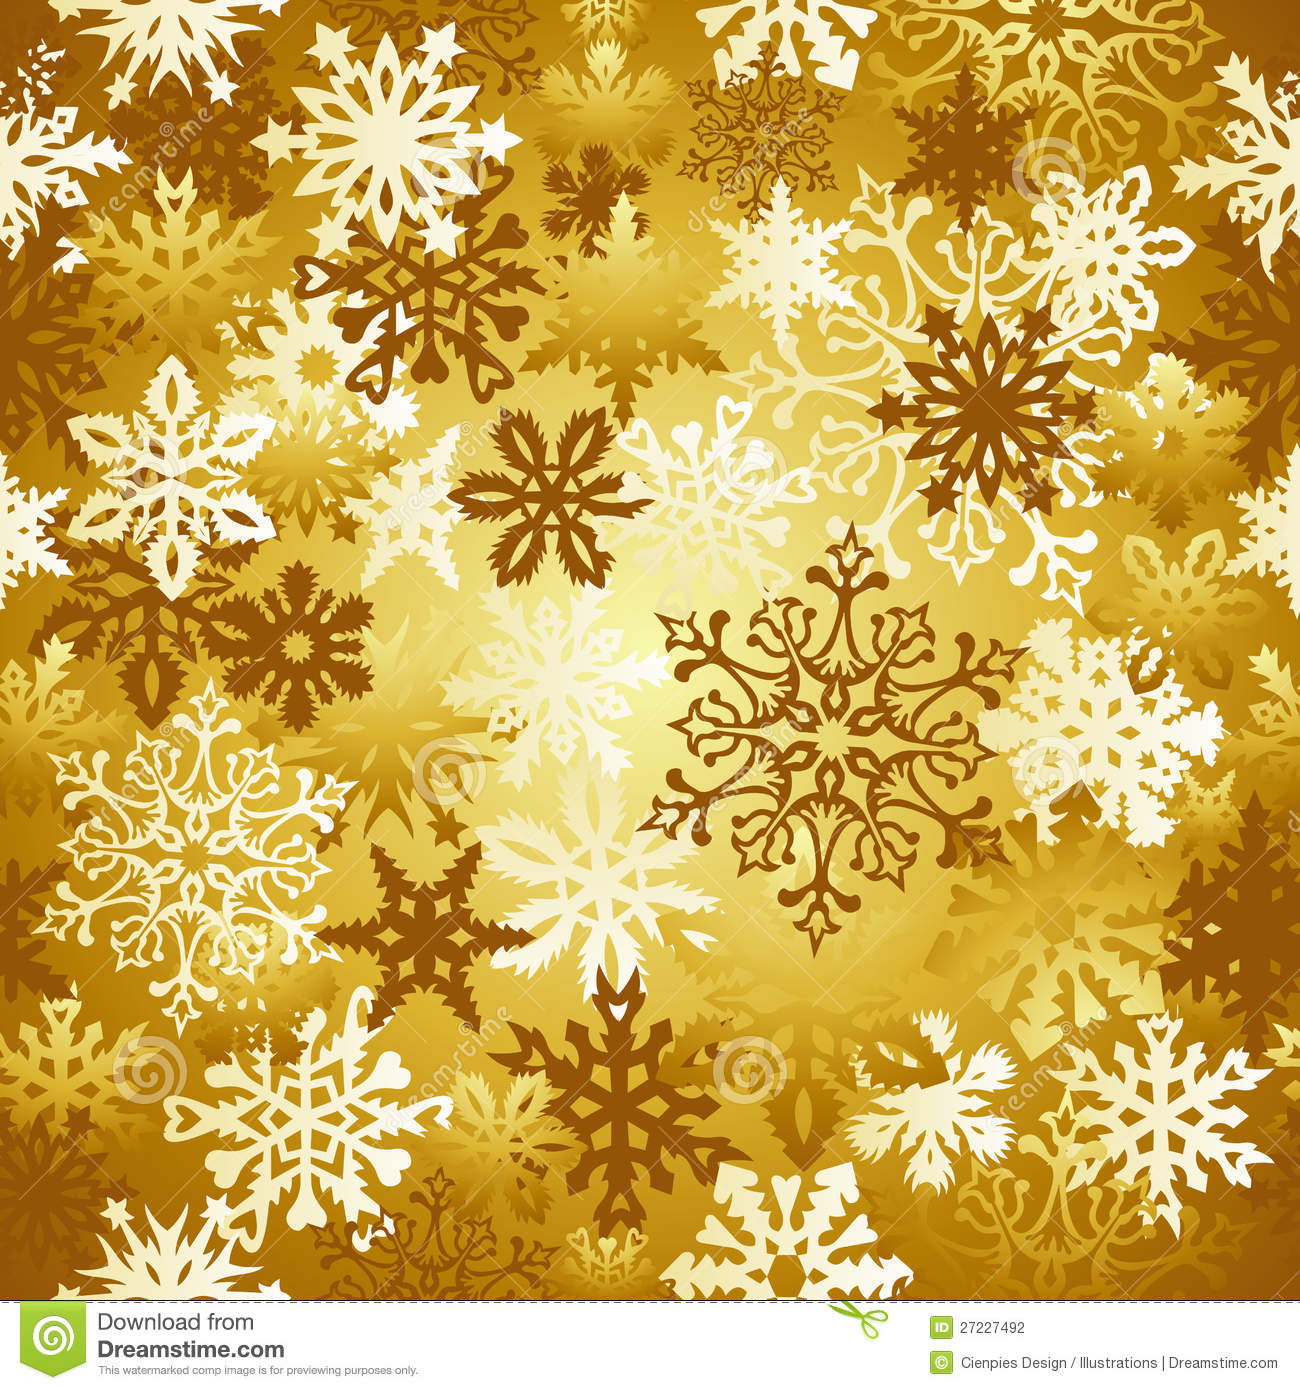 download gold christmas snowflakes pattern stock vector illustration of glossy light 27227492 - Gold Christmas